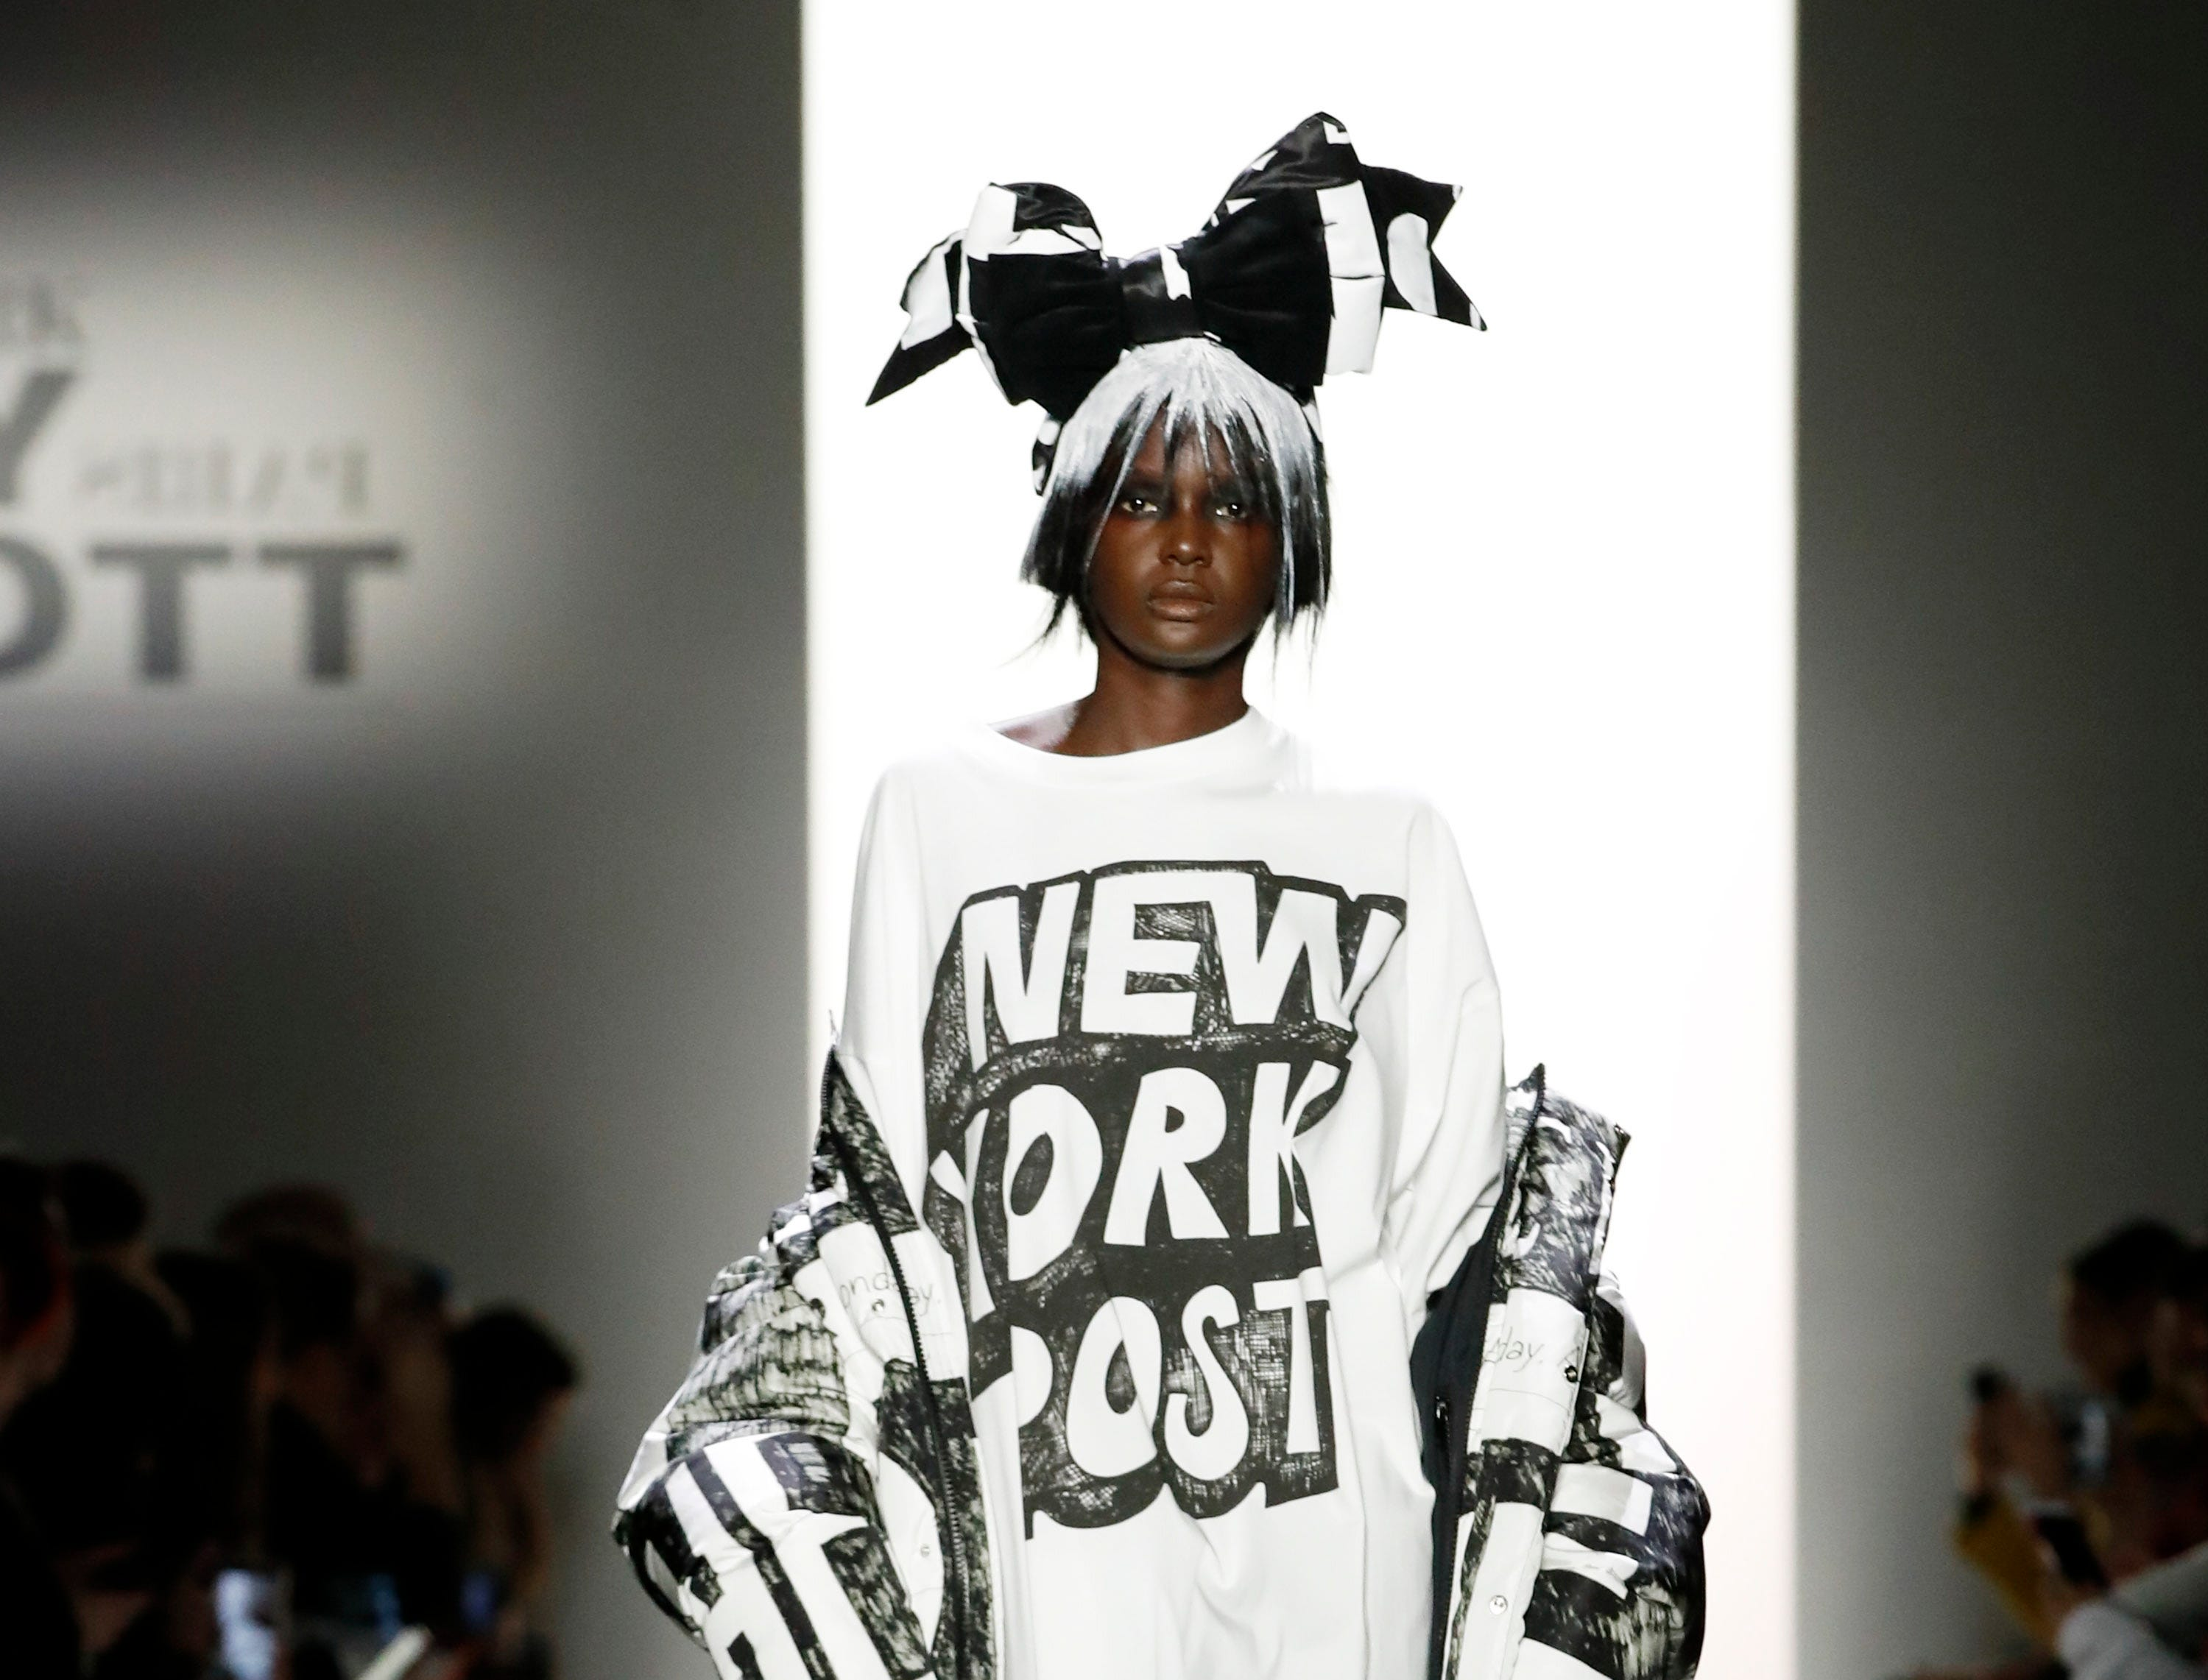 epa07354238 A model walks down the runway to present a creation by Jeremy Scott during New York Fashion Week in New York, New York, USA, 08 February 2019. New York Fashion Week for designer's autumn and winter lines is being held from 06 to 13 February 2019.  EPA-EFE/JASON SZENES ORG XMIT: JSX05